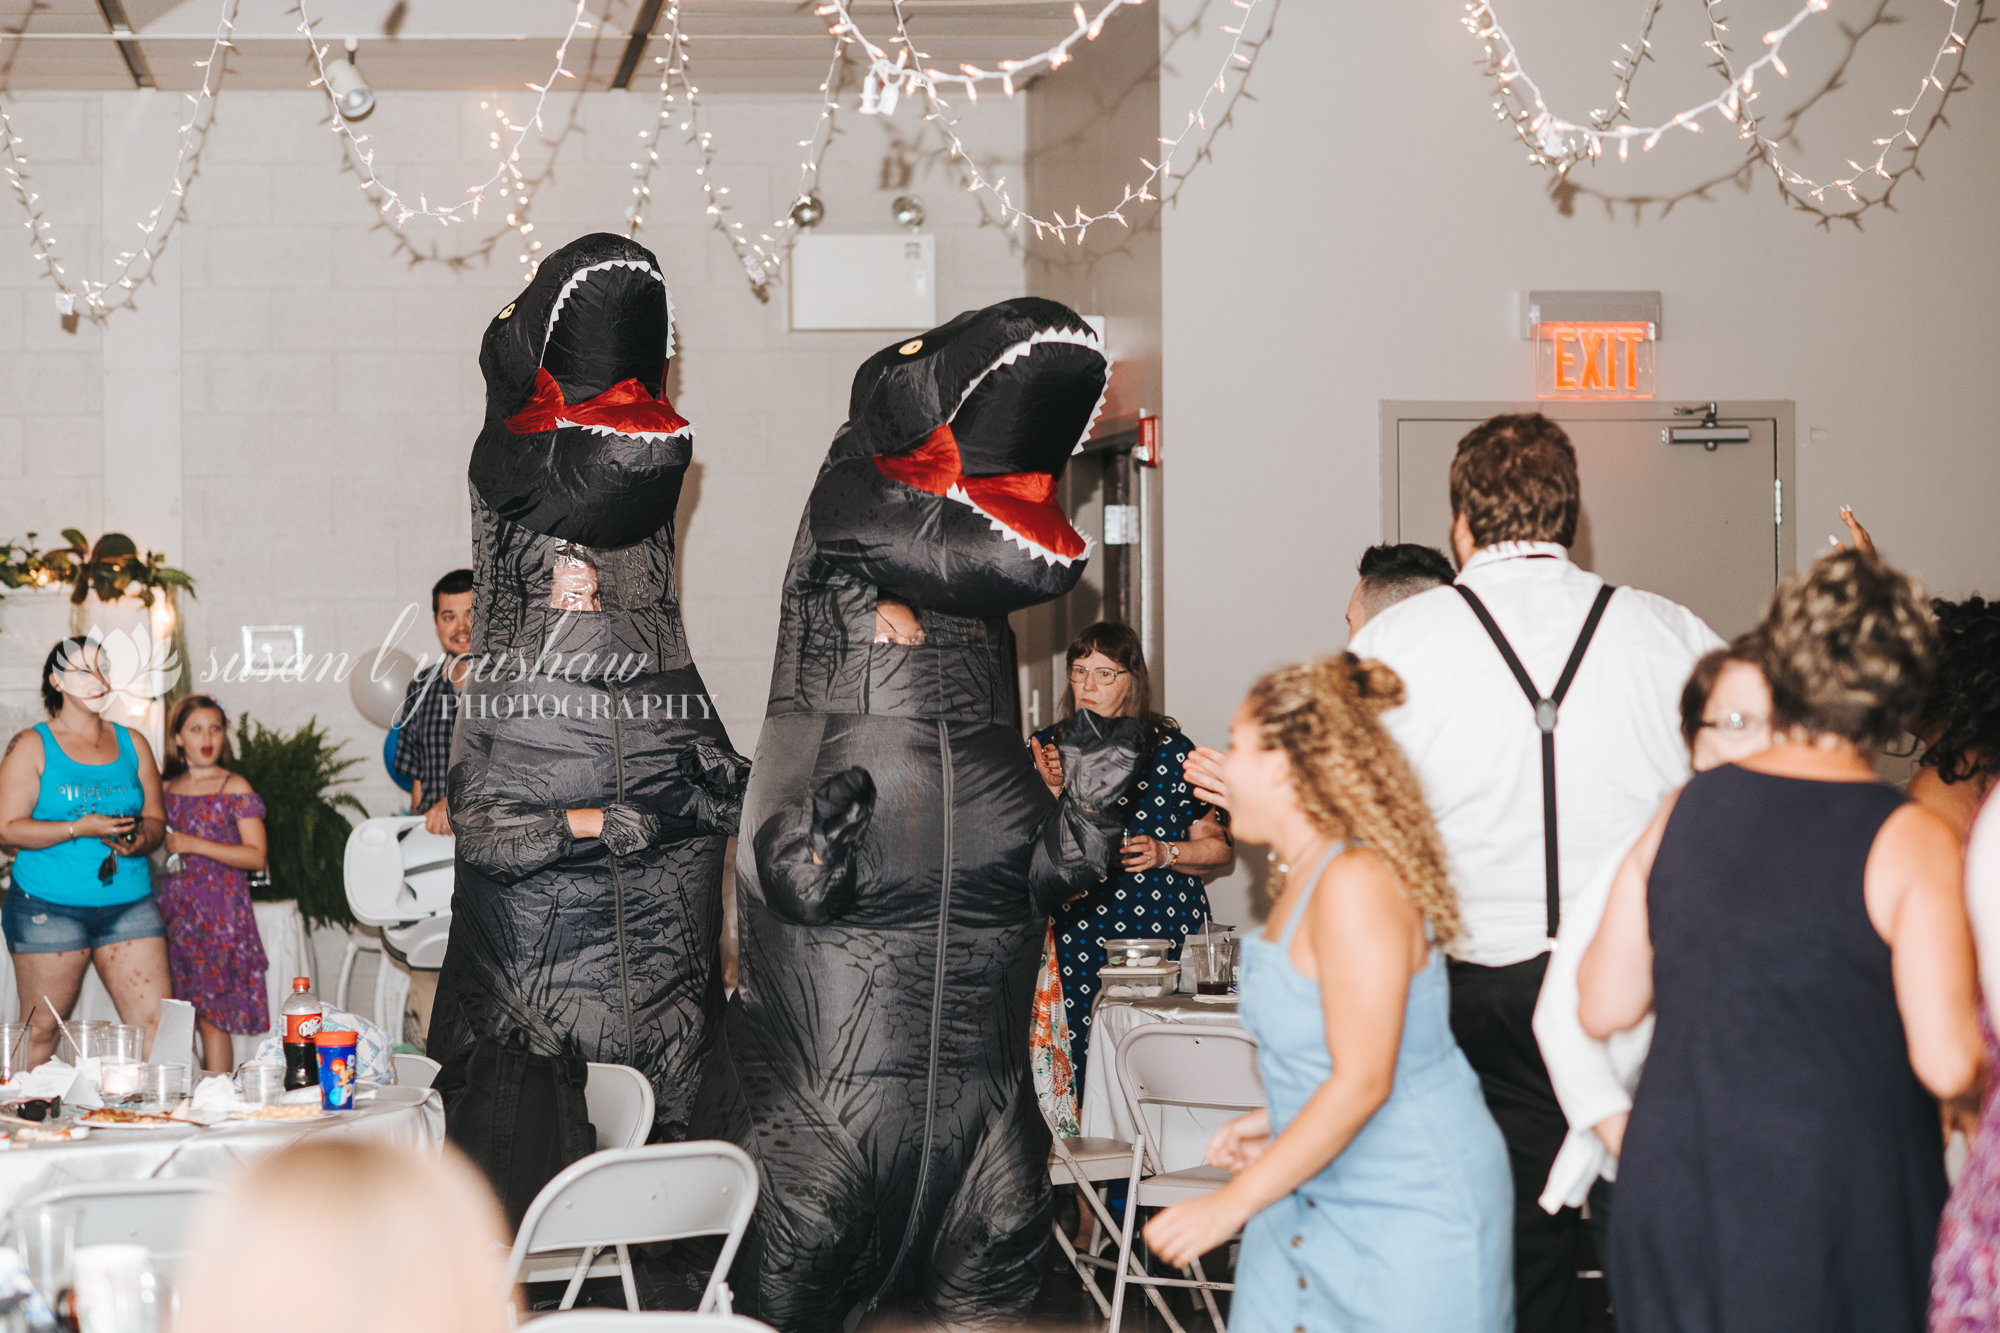 Katelyn and Wes Wedding Photos 07-13-2019 SLY Photography-128.jpg